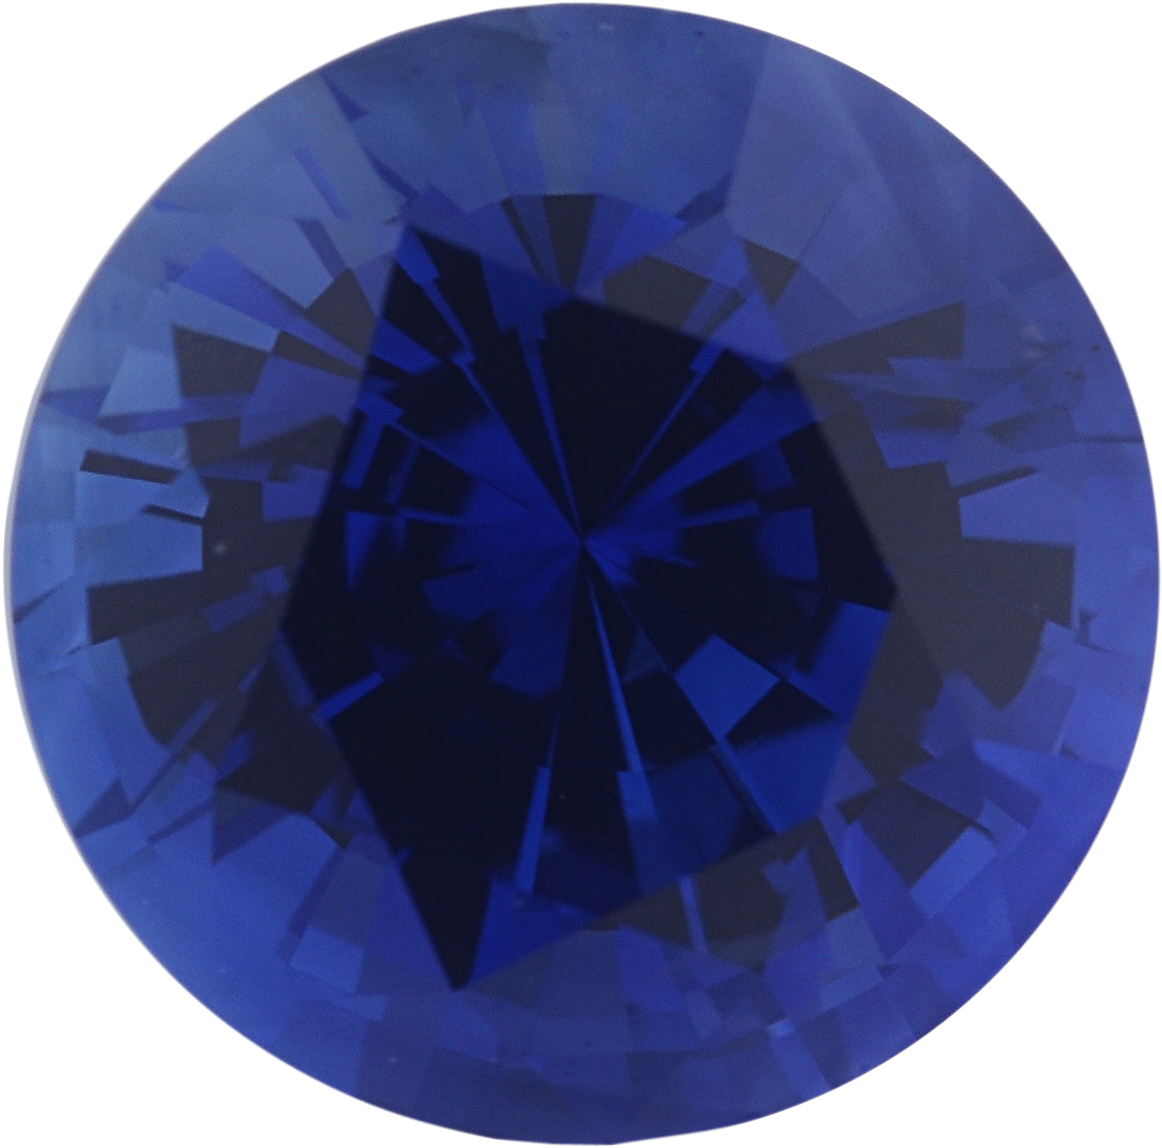 1.43 carats Blue Loose Sapphire Gemstone in Round Cut, 6.67 mm